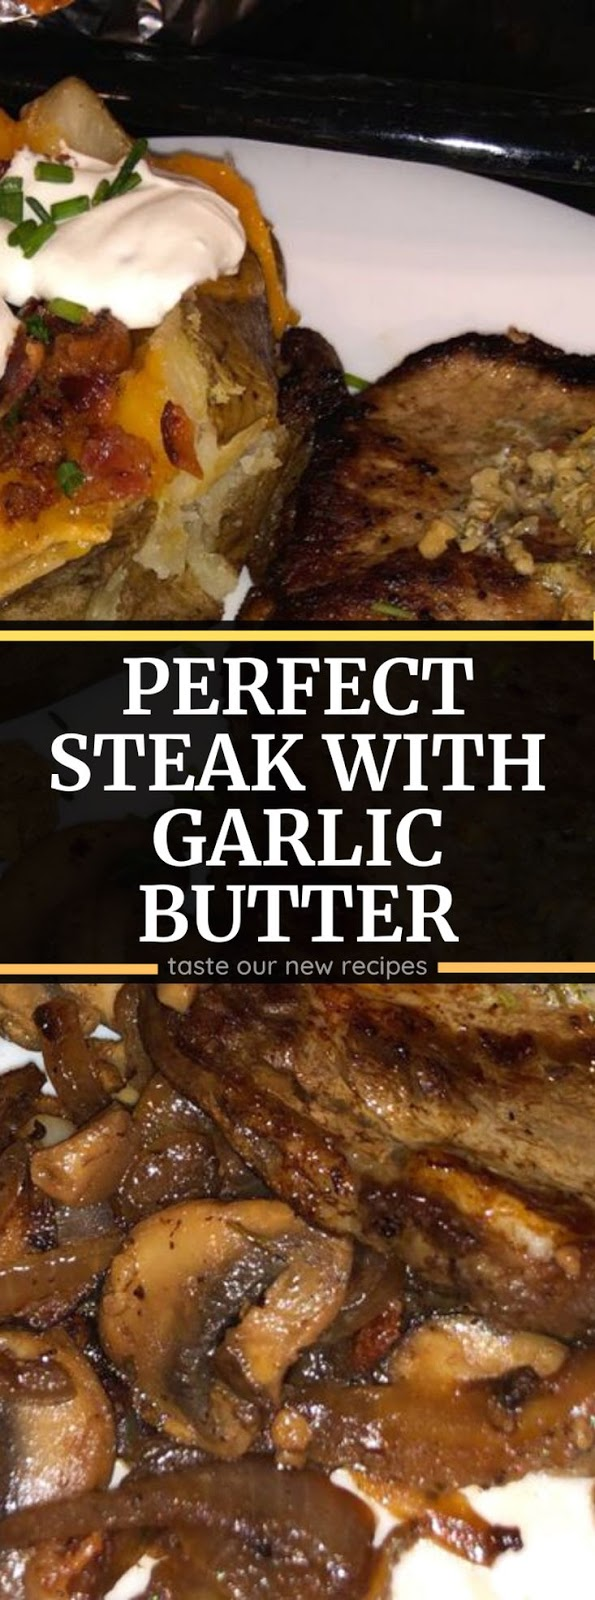 Perfect Steak with Garlic Butter